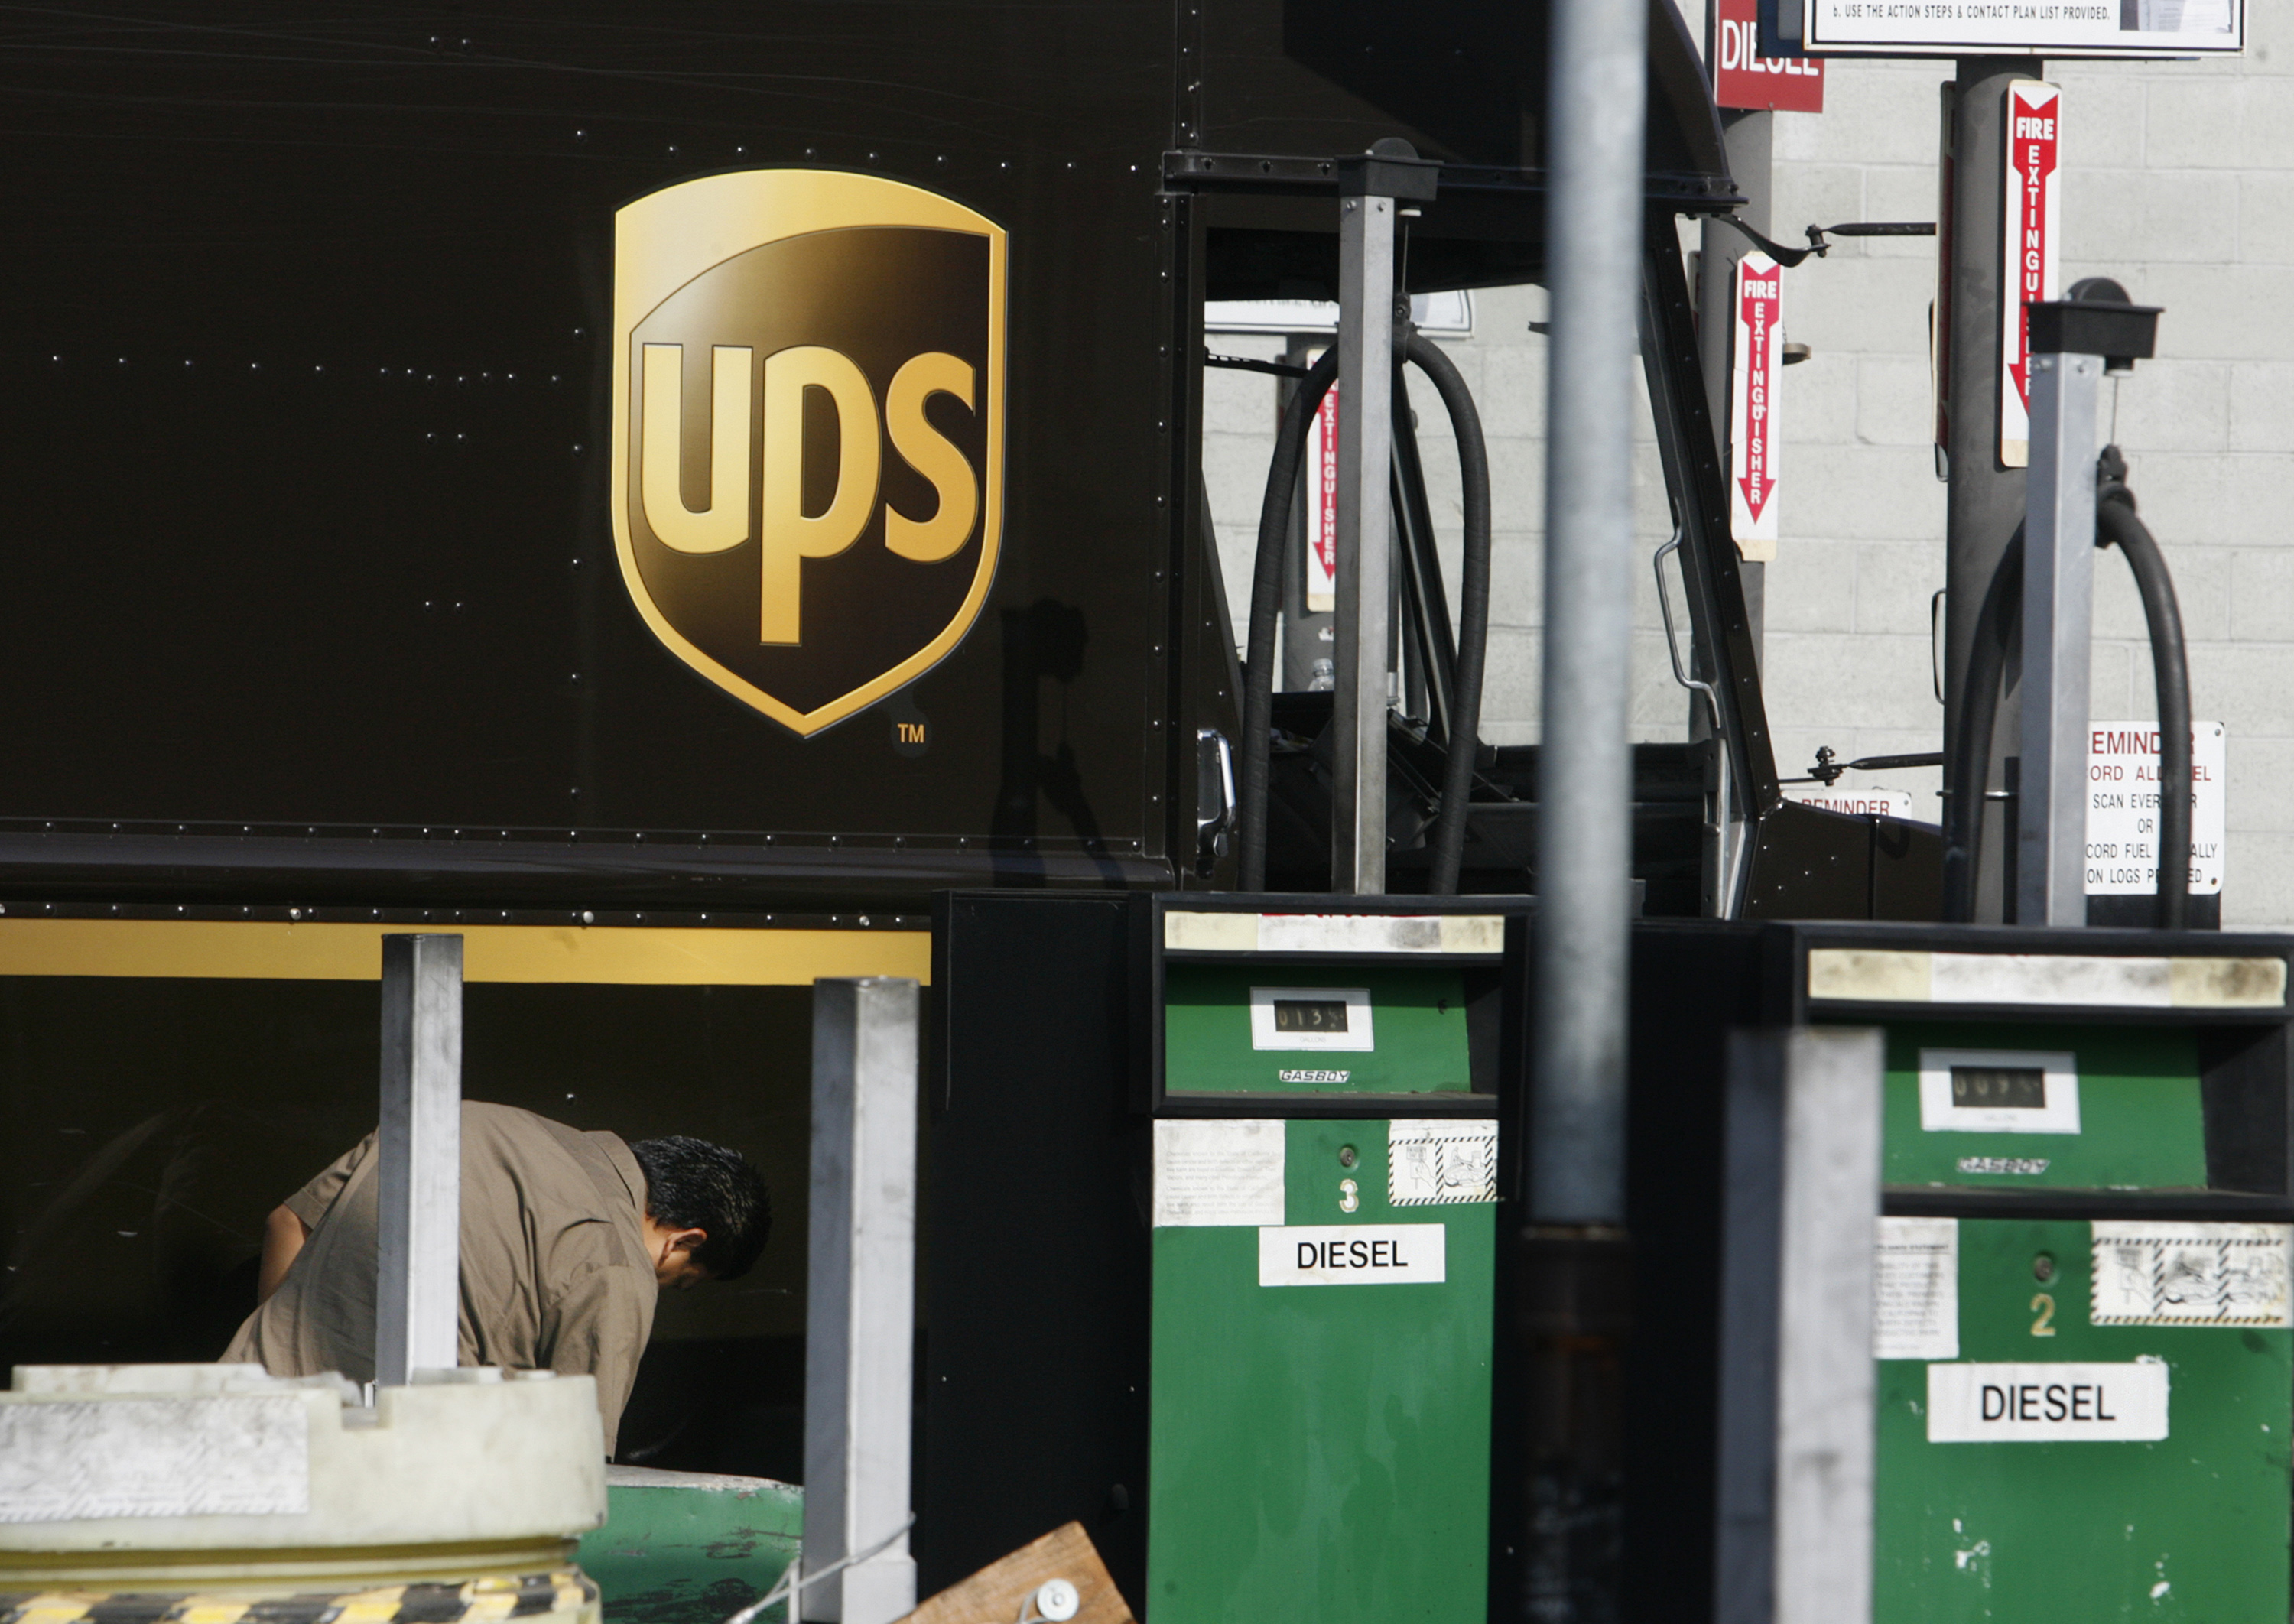 A United Parcel Service (UPS) employee checks his vehicle at a UPS diesel fuel pump facility in Los Angeles, California July 22, 2008. REUTERS/Fred Prouser